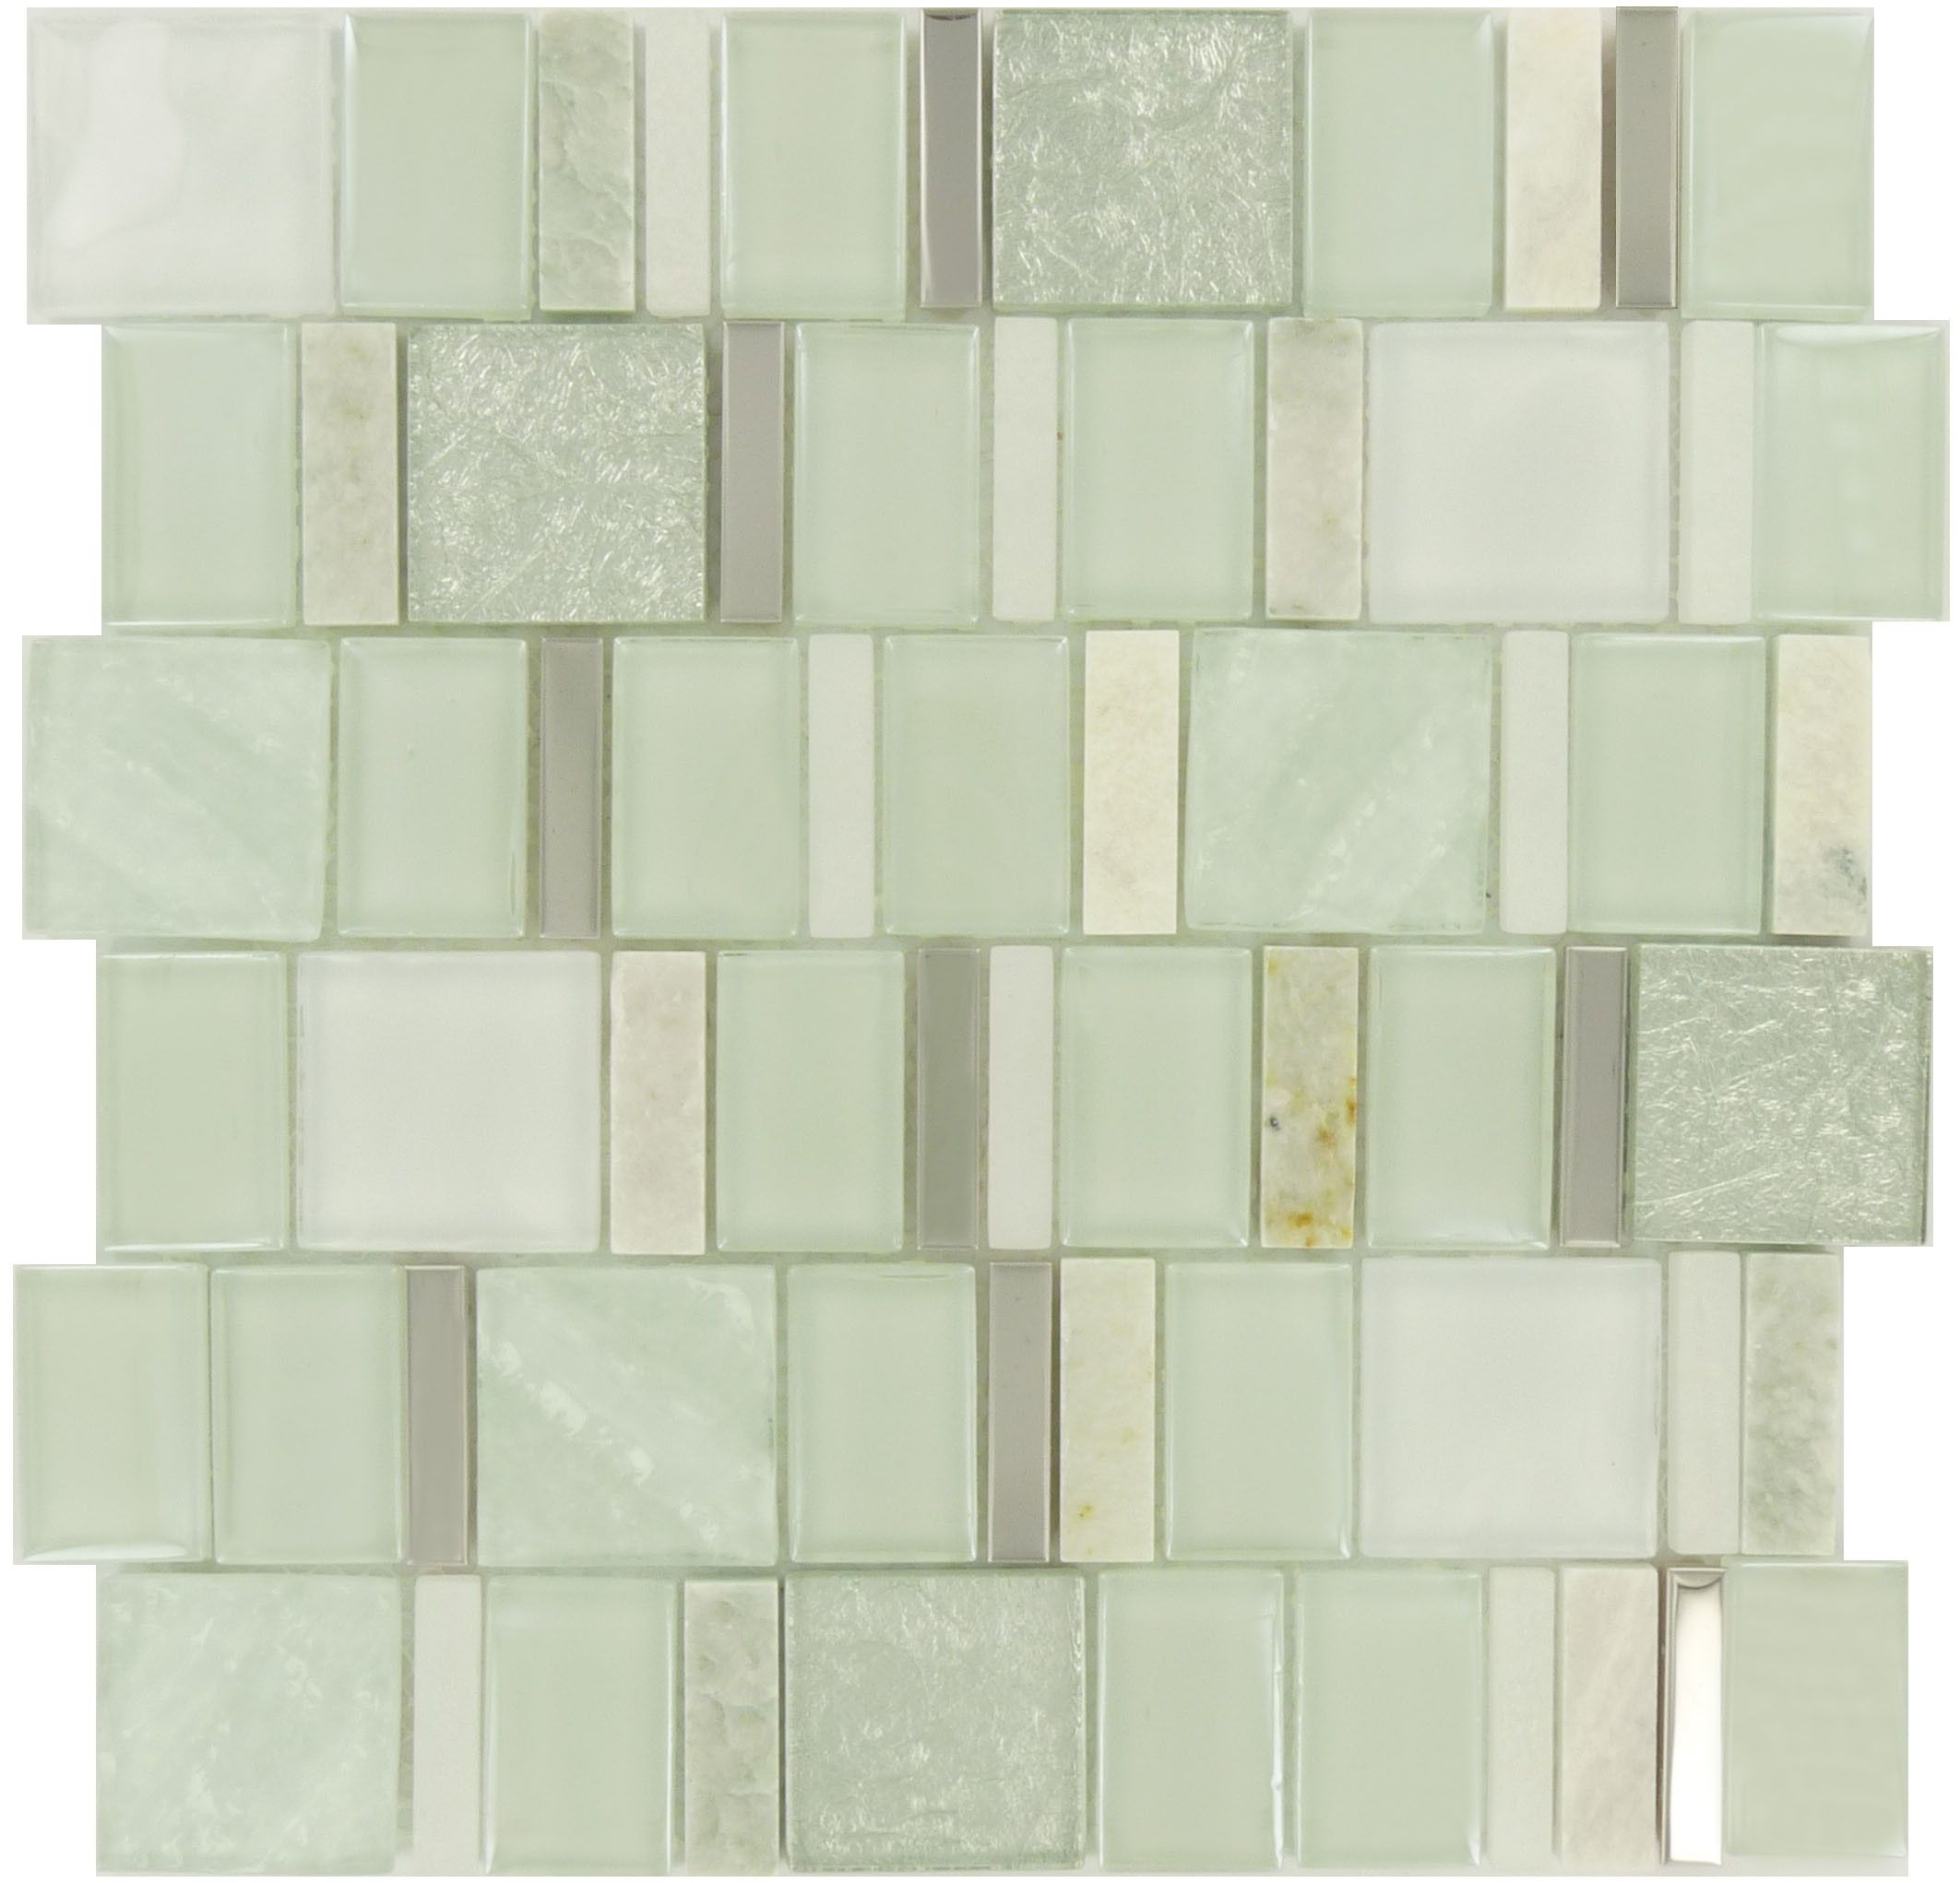 Pine Green Unique Shapes Glass Stone Metal Glossy Matte Tile Sea Glass Tile Matte Tile Glass Tile